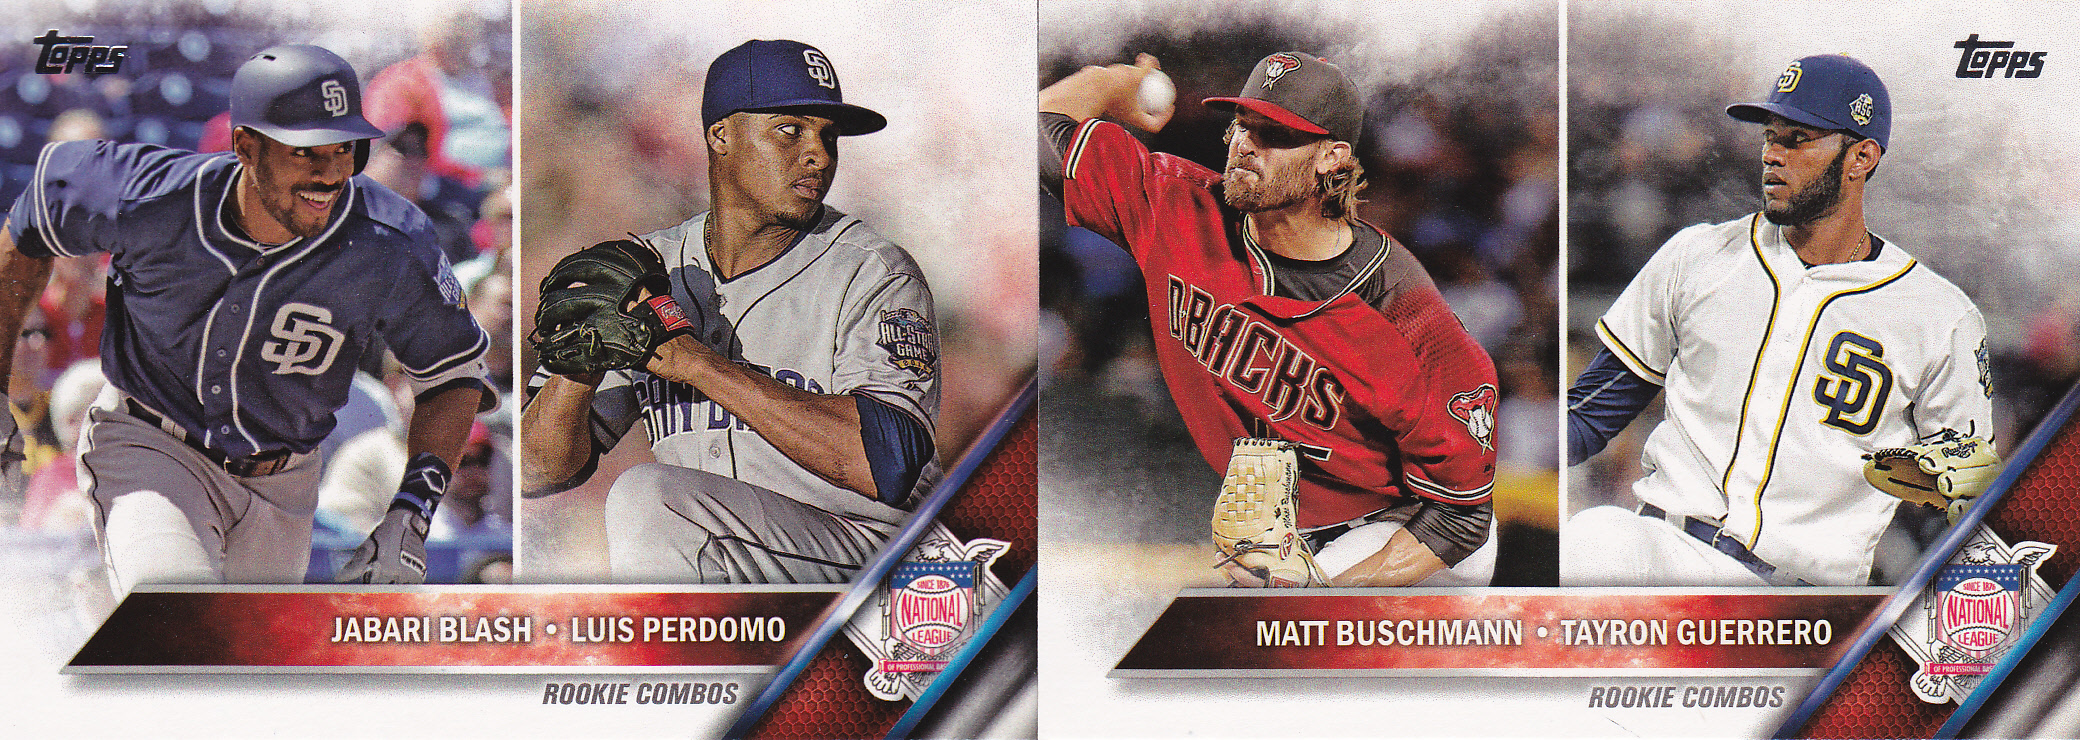 2016 Topps Update Hobby Box Subsets Lifetime Topps Project